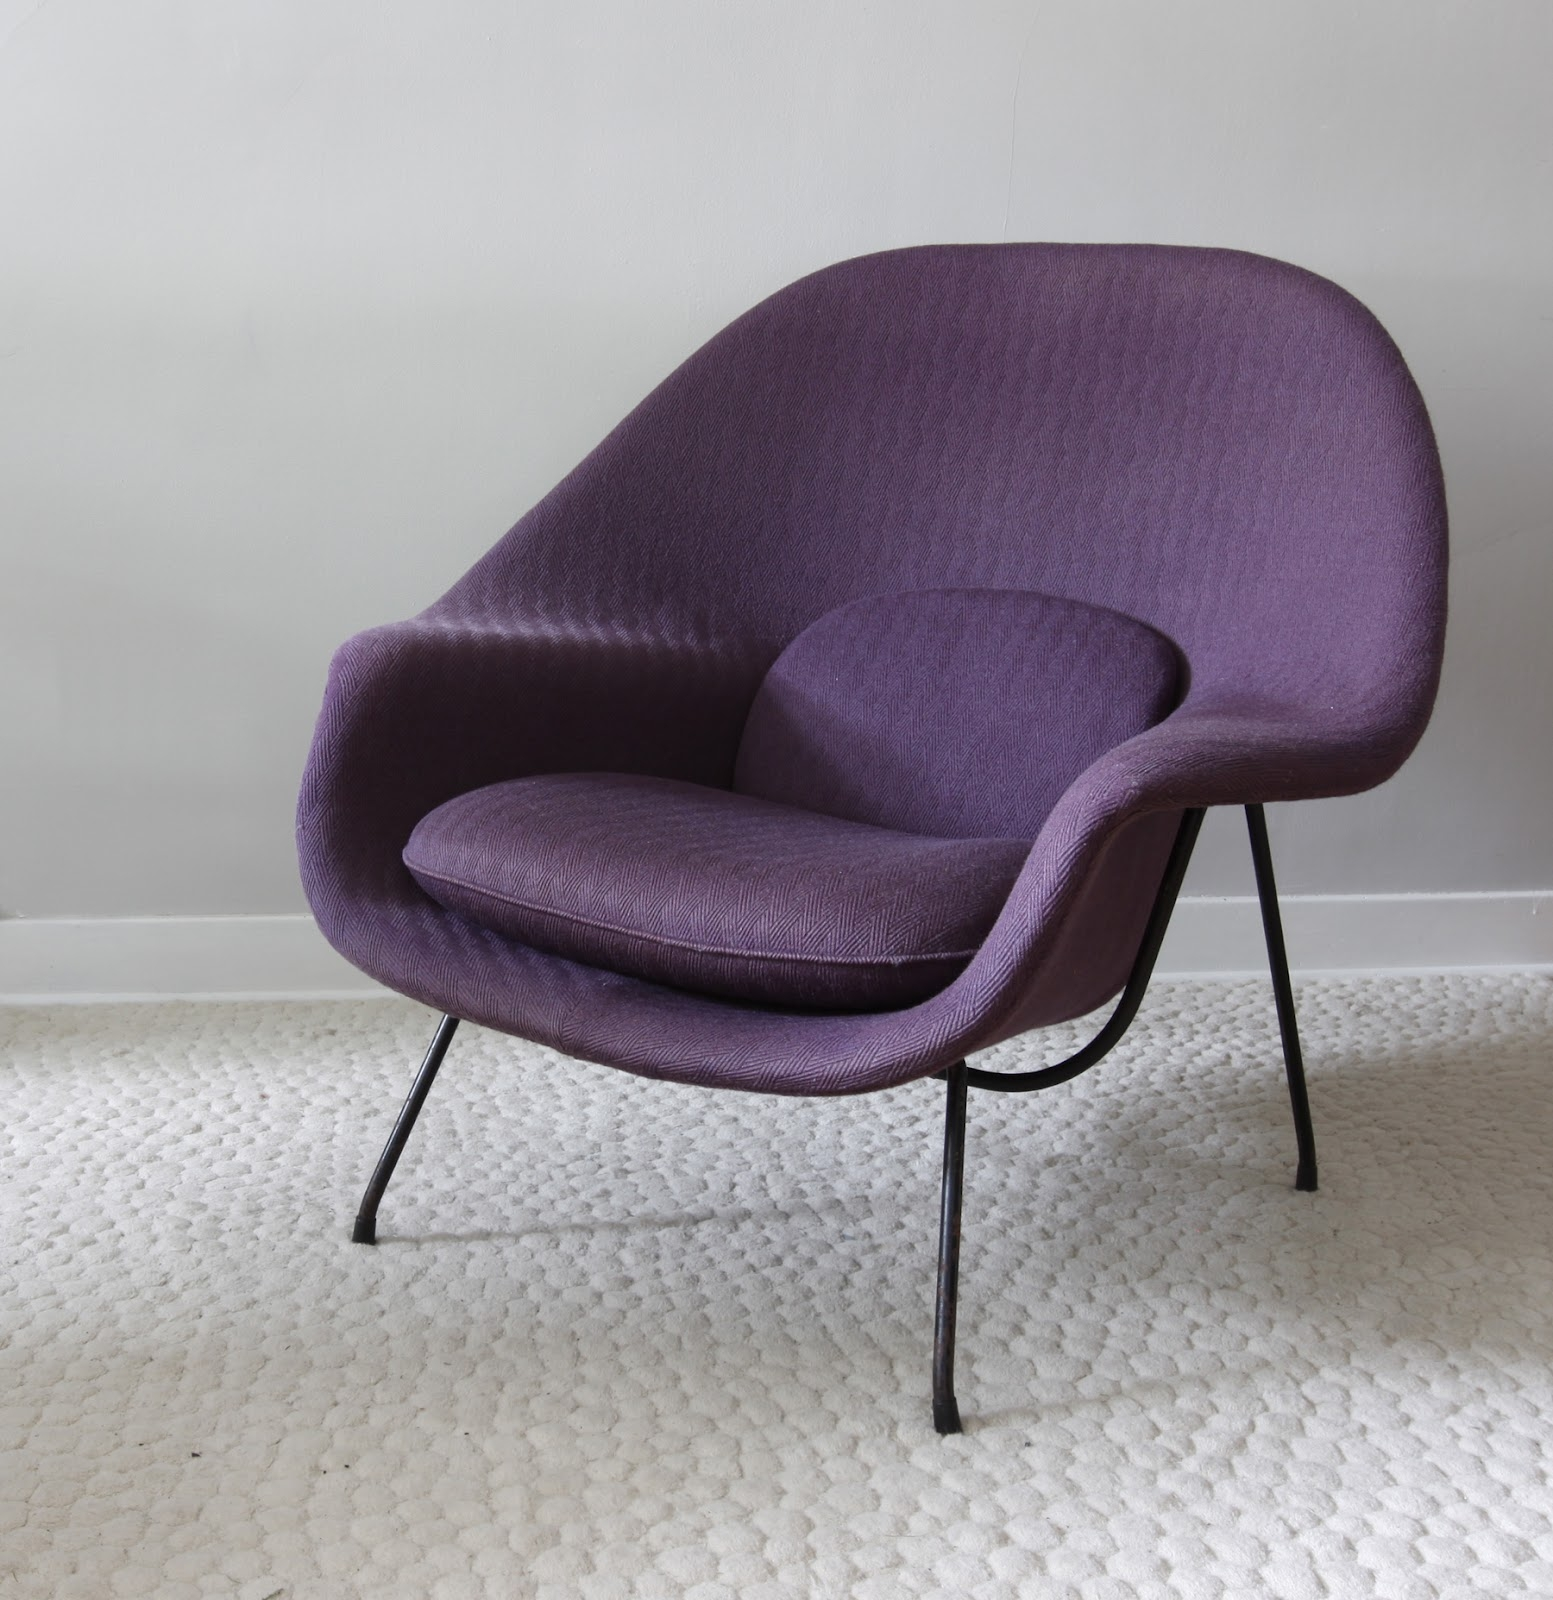 purple-saarinen-womb-chair-nz-dining-chair-saarinen (1)